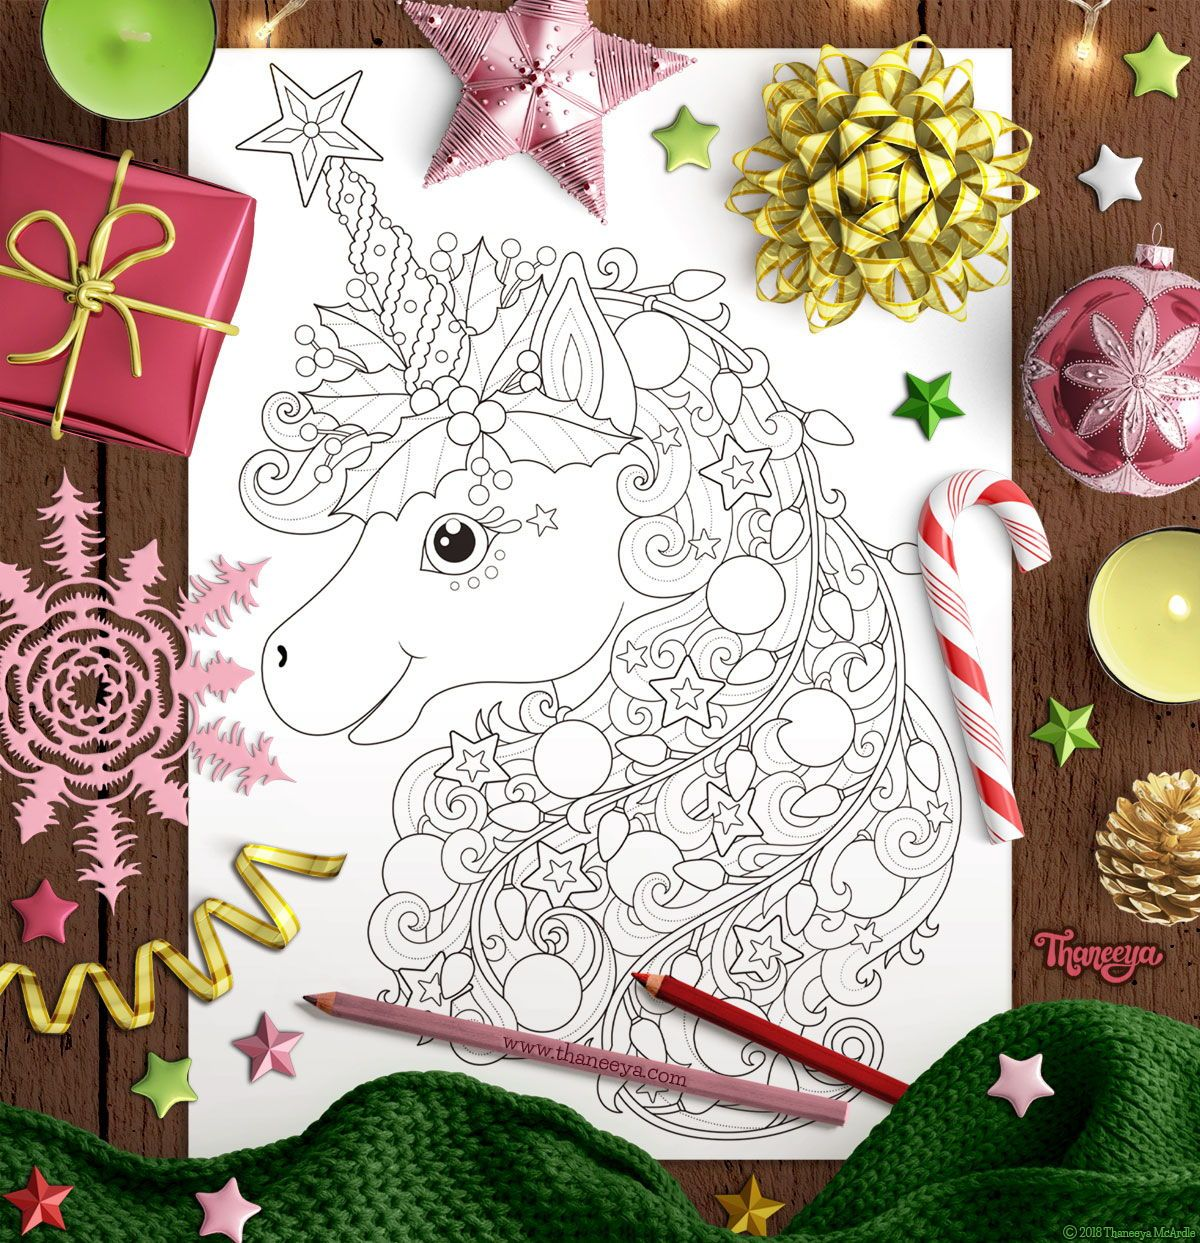 - Christmas Unicorn Coloring Page From Thaneeya McArdle's Holiday